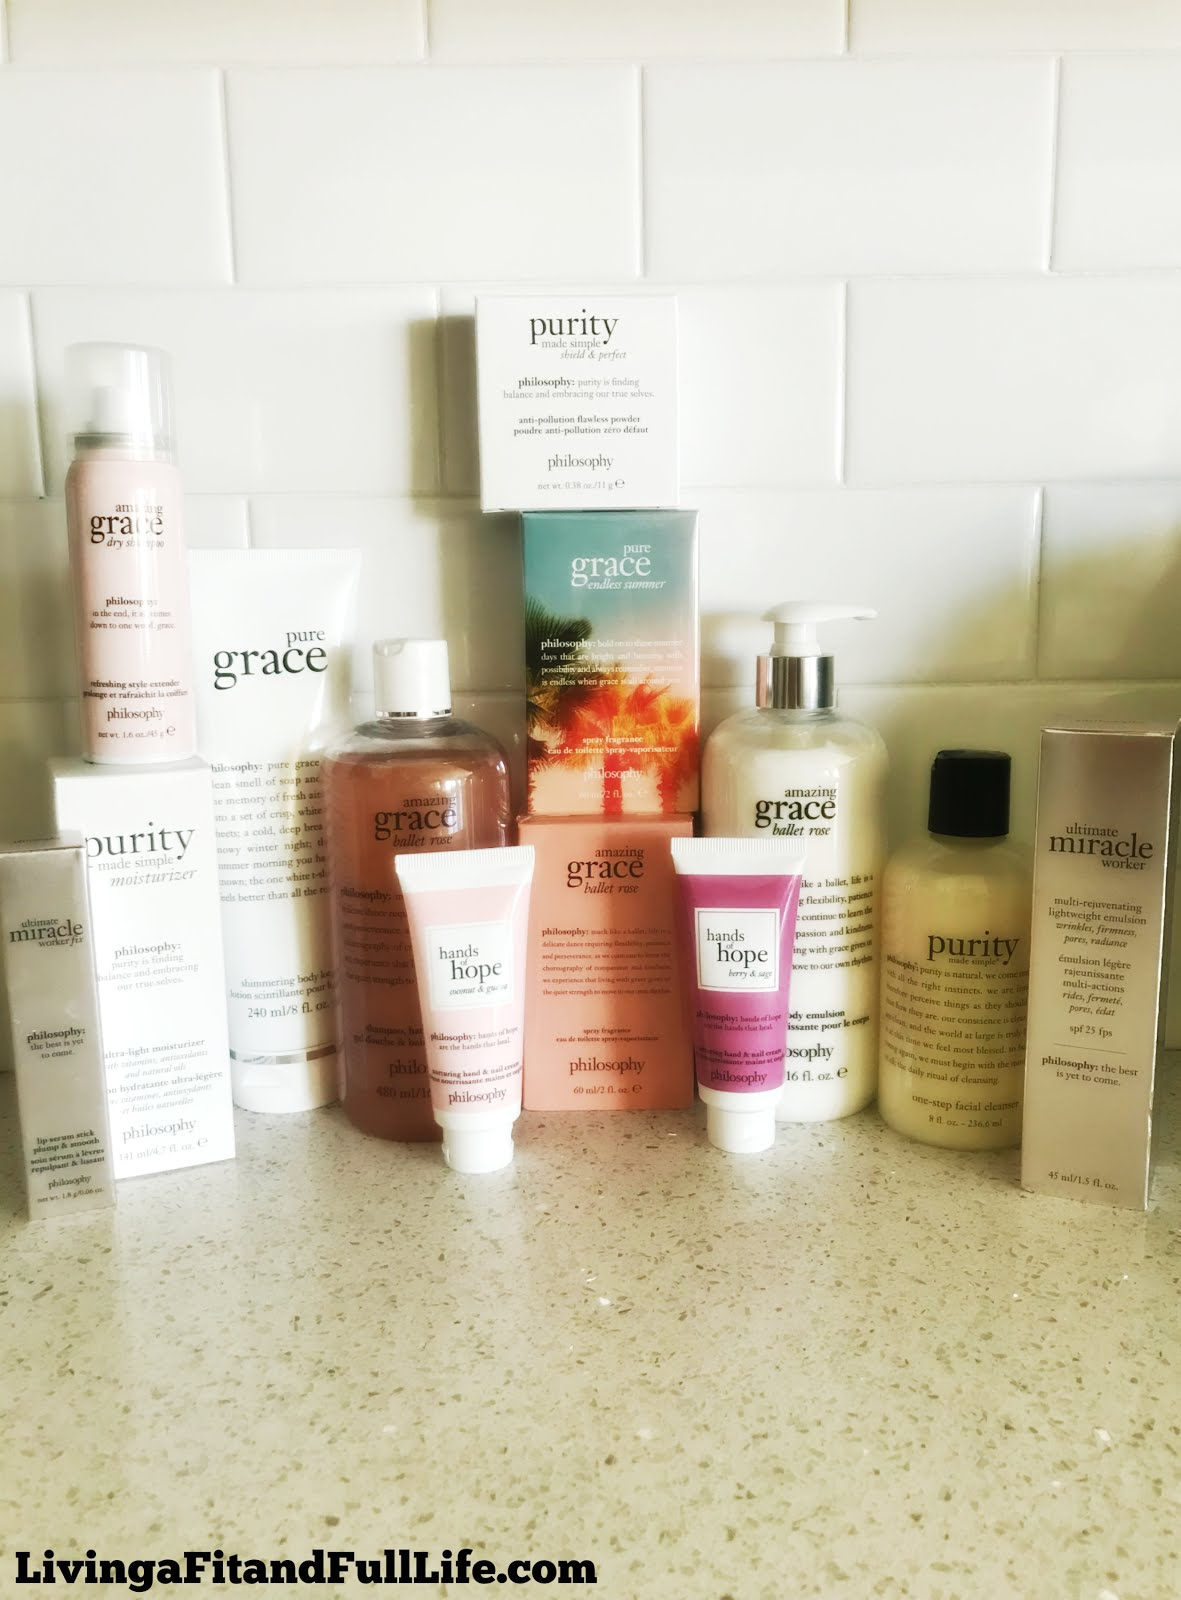 Summer Favorites from philosophy! #lovephilosophy